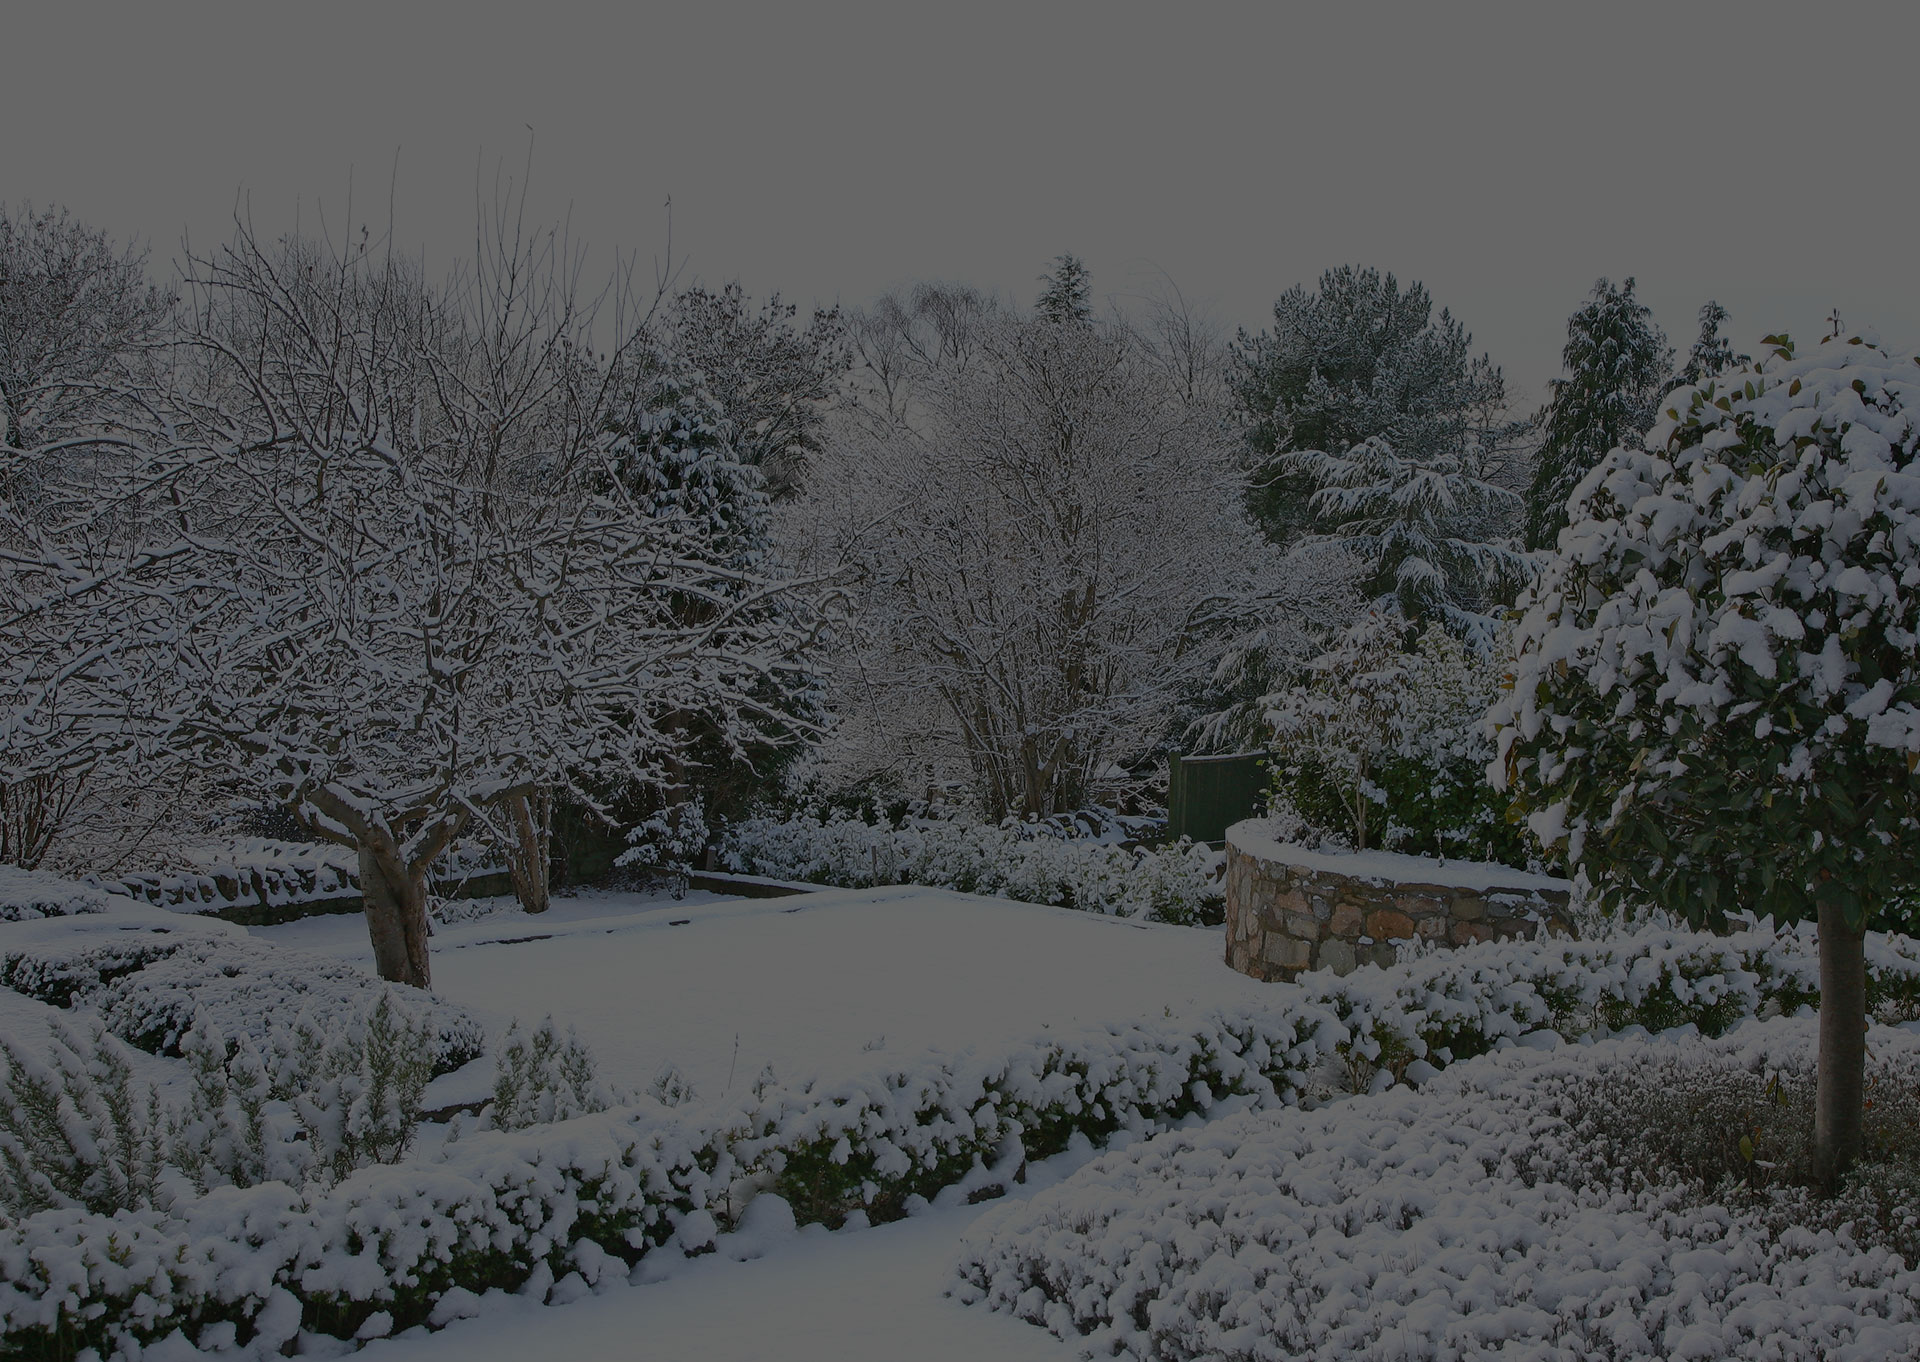 land covered in snow